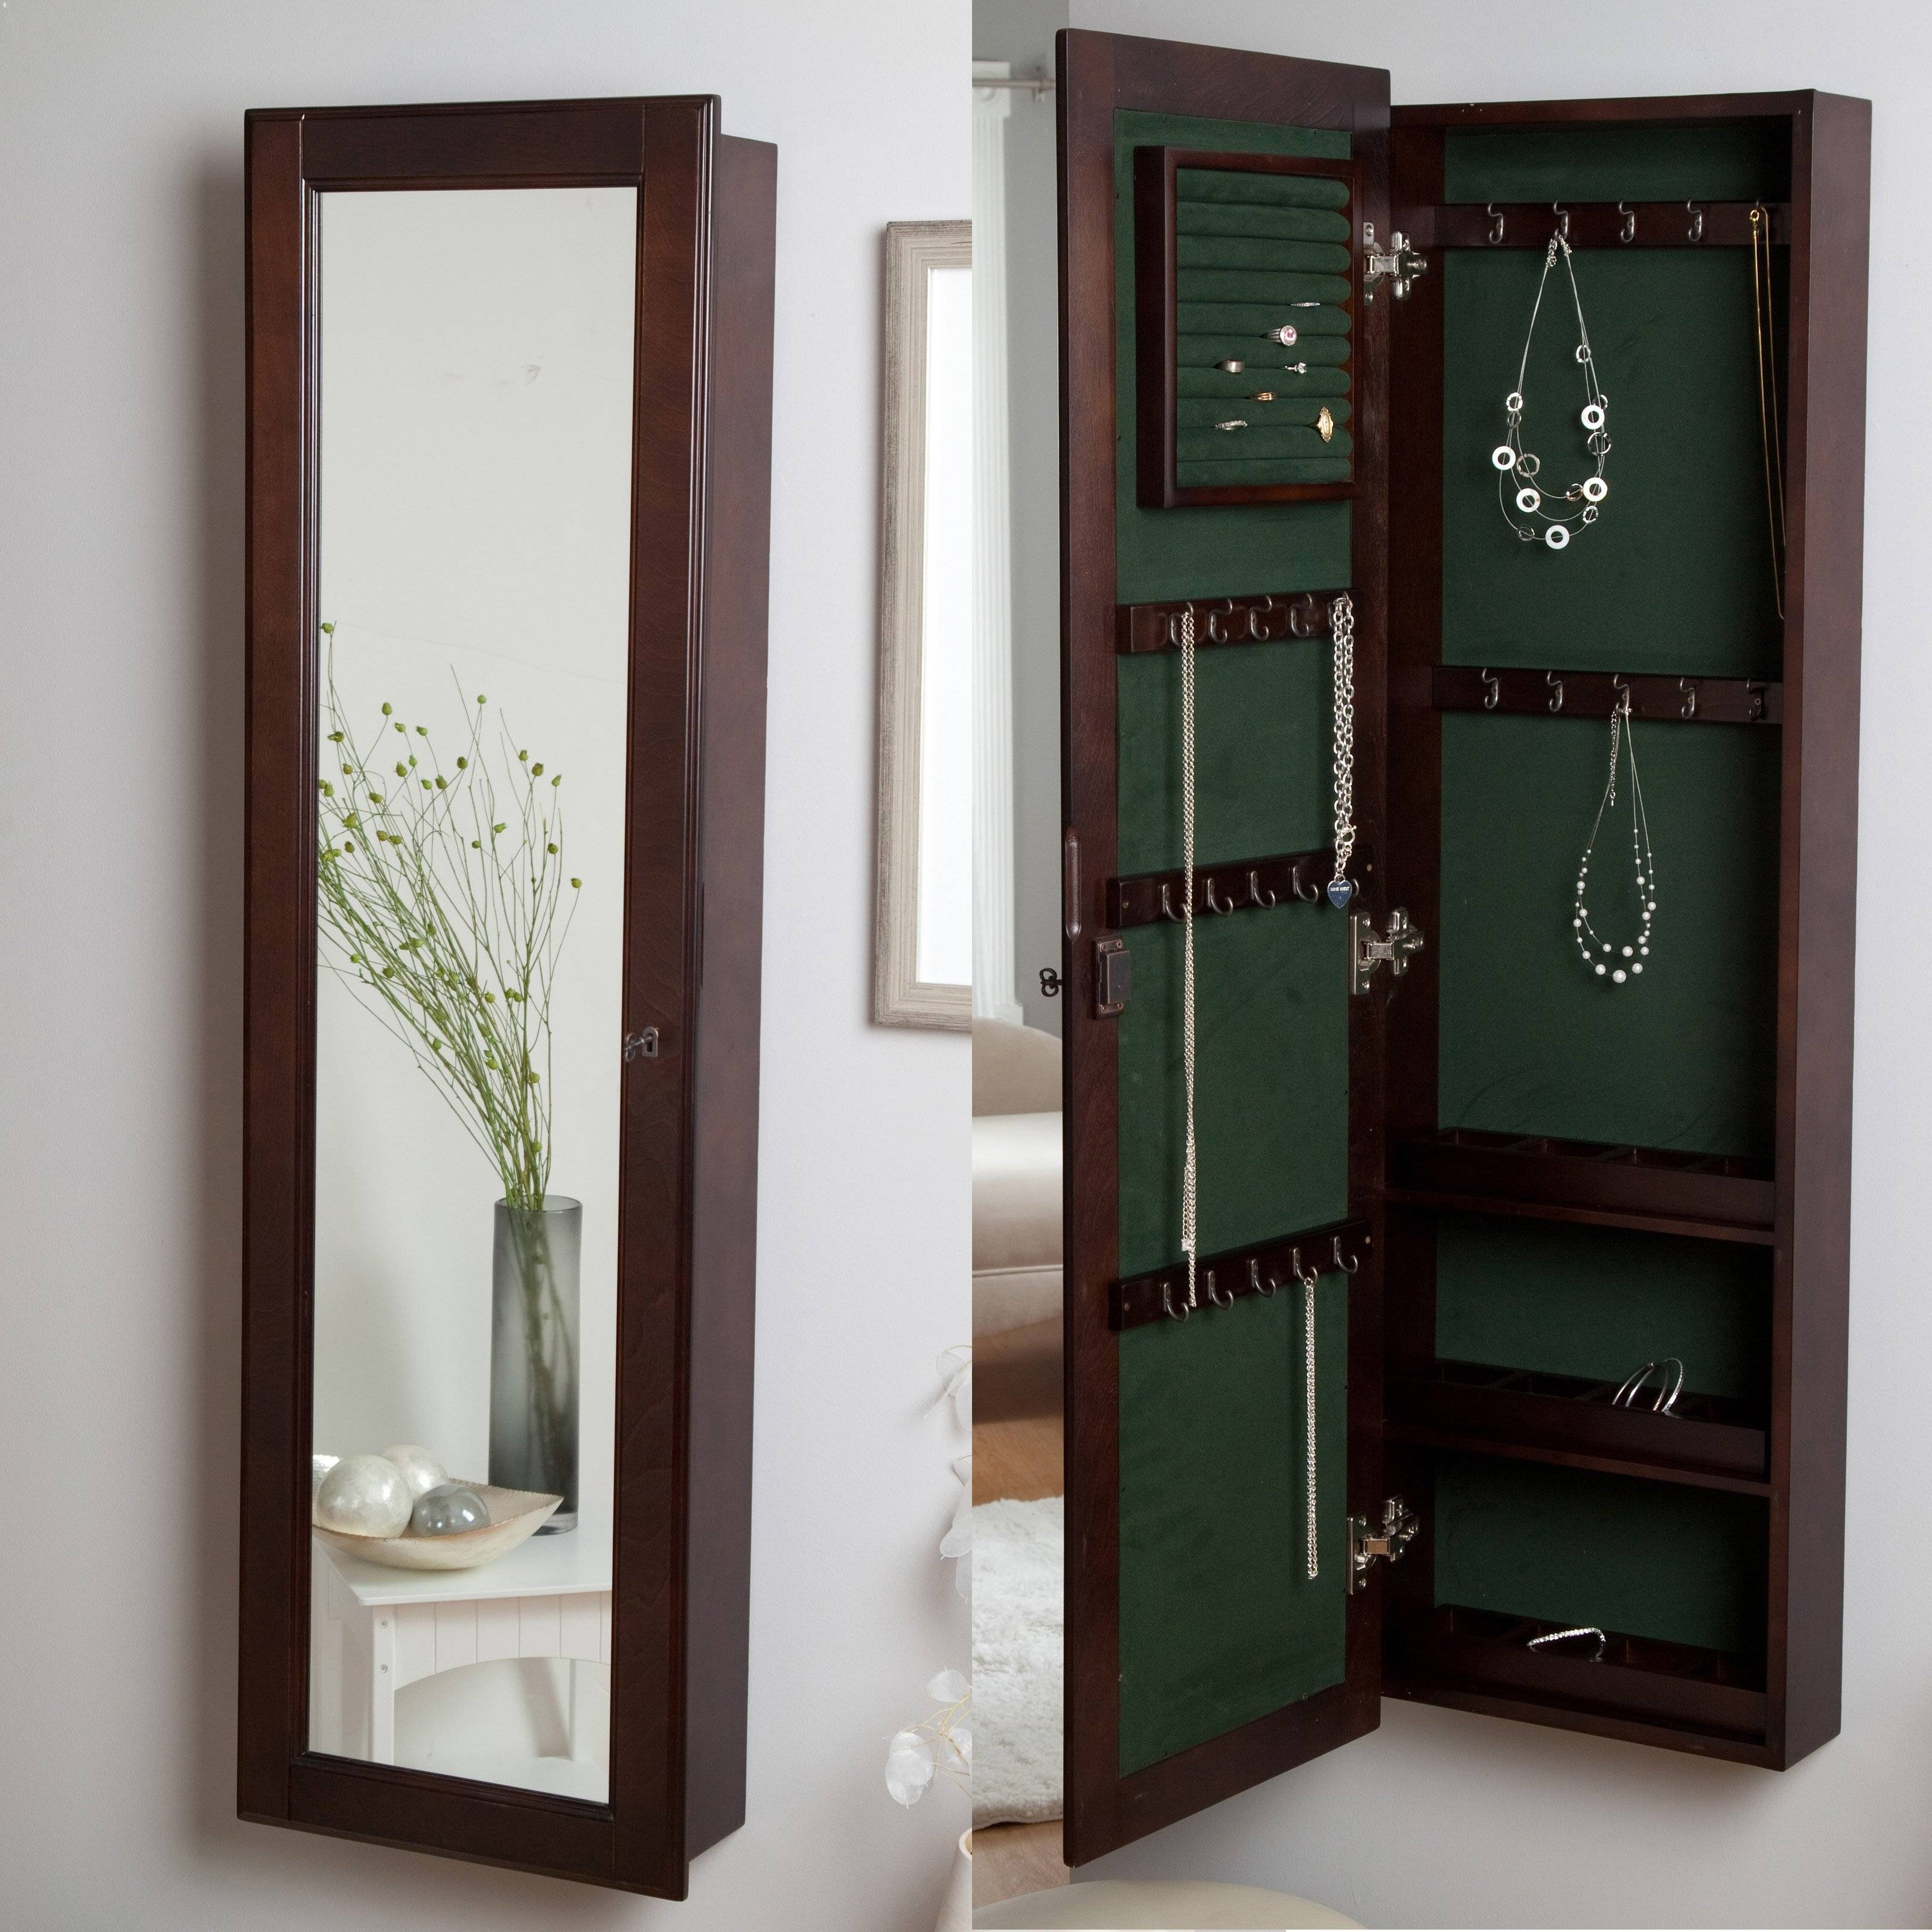 Bedroom Furniture Sets : Frameless Wall Mirror Venetian Mirror intended for Square Venetian Mirrors (Image 7 of 25)